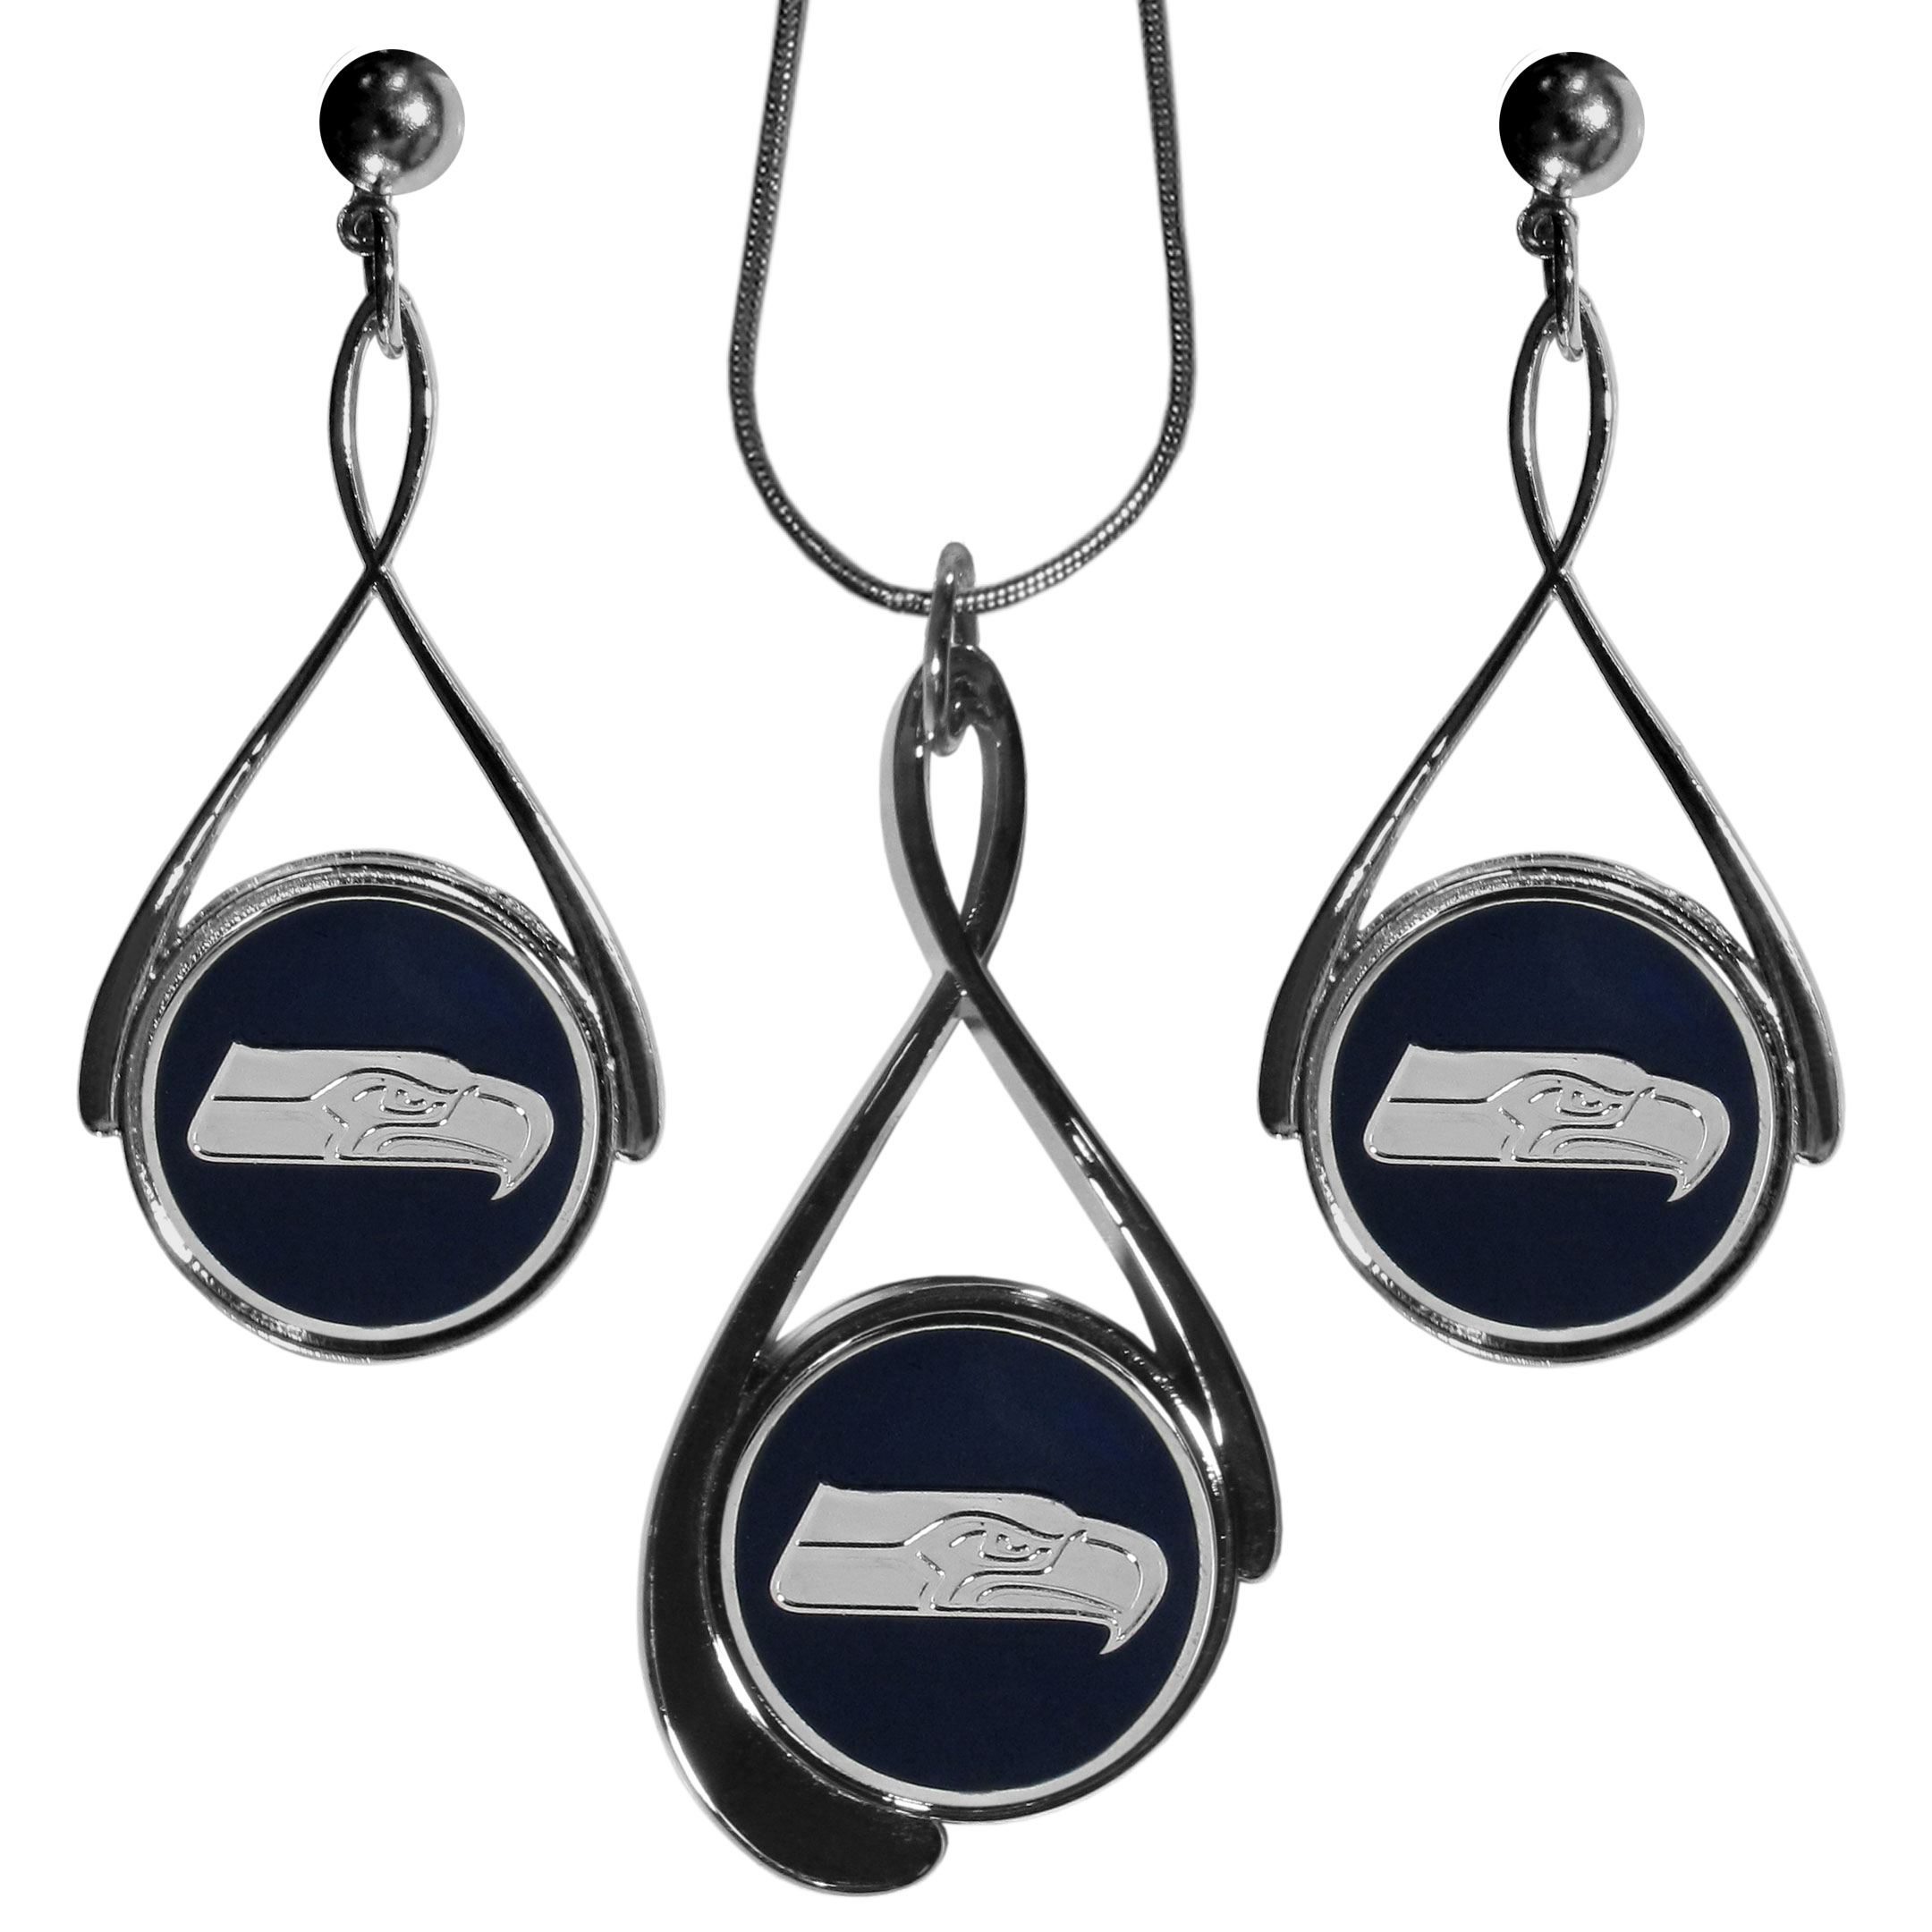 Seattle Seahawks Tear Drop Jewelry Set - Our Seattle Seahawks tear drop earrings and necklace set is a sporty twist on the classic tear drop style. The high polish dangle earrings feature the team logo in raised metal against the primary team color inset into the 2 inch tear drop setting paired with a beautiful matching necklace with a 18 inch snake chain with 2 inch extendor. The earrings have hypoallergenic stud posts.